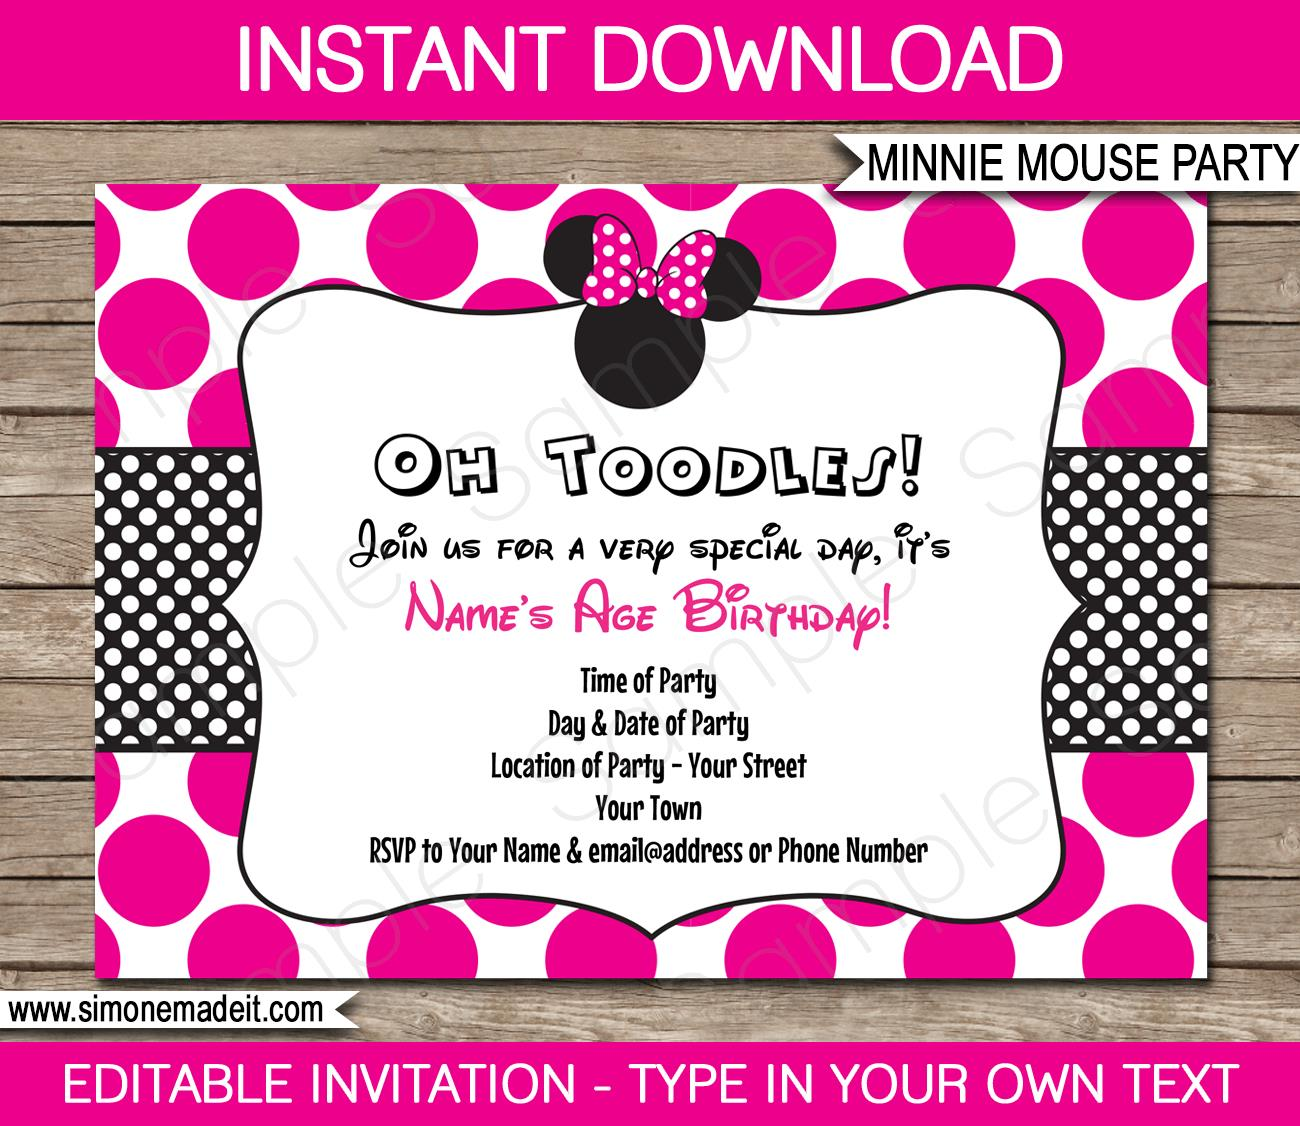 free printable minnie mouse birthday invitation templates ; Printable-Minnie-Mouse-Party-Invitation-Template